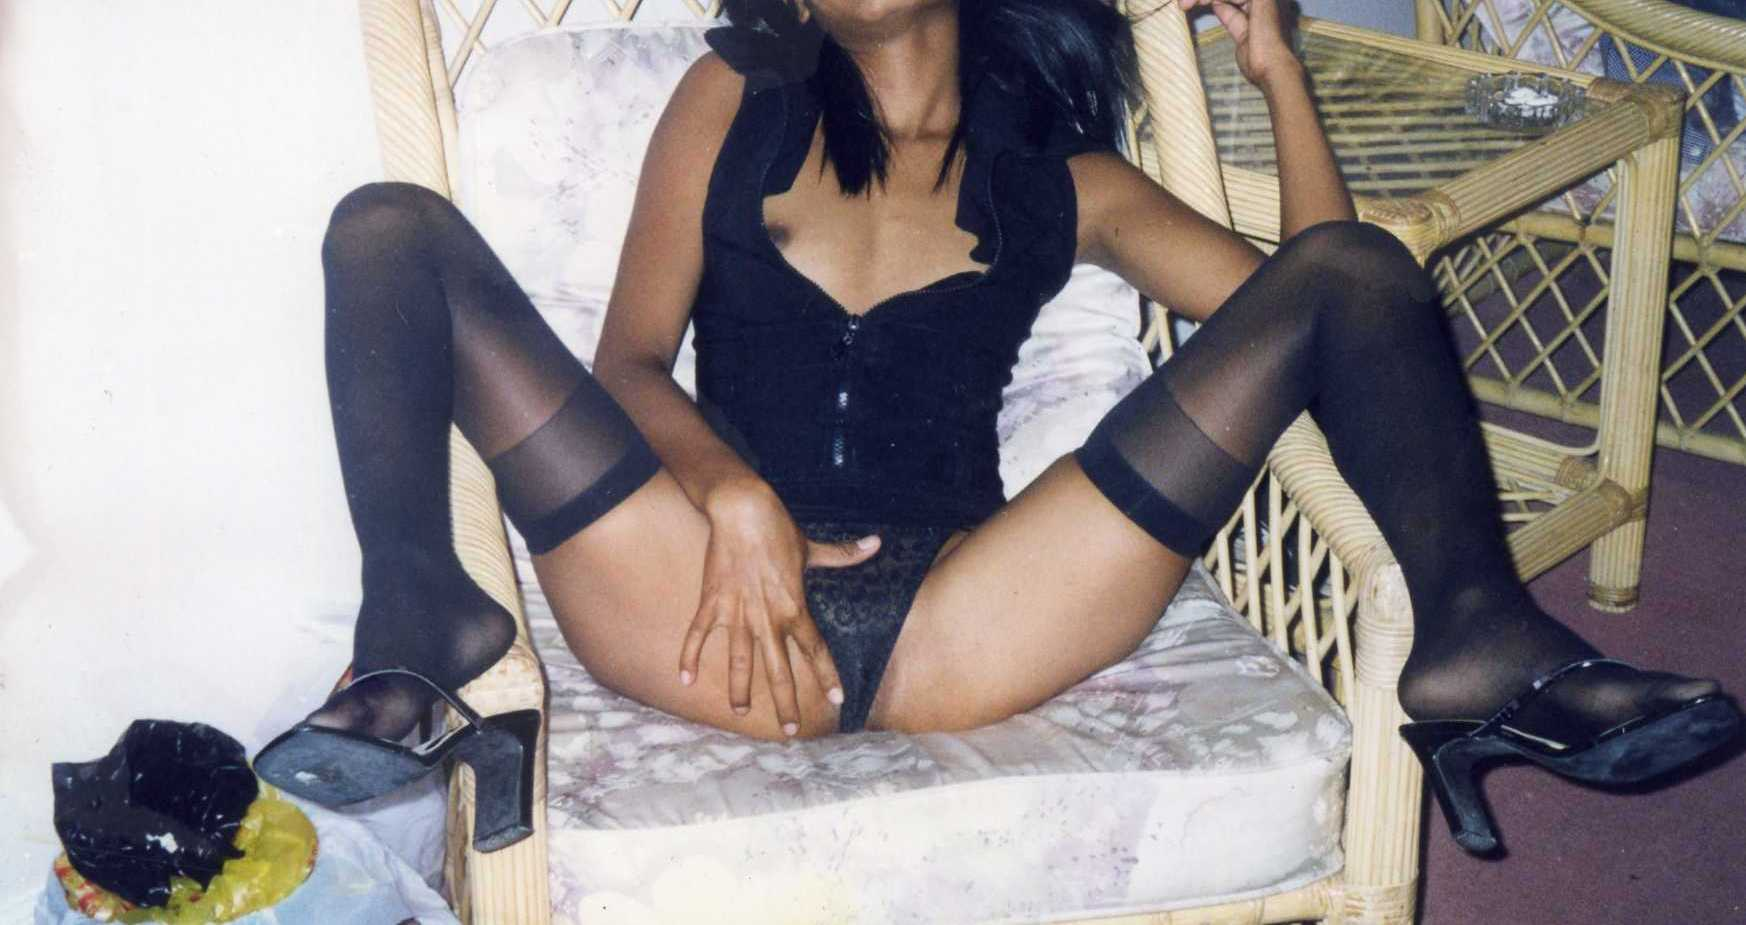 from Edgar real young girl with stockings